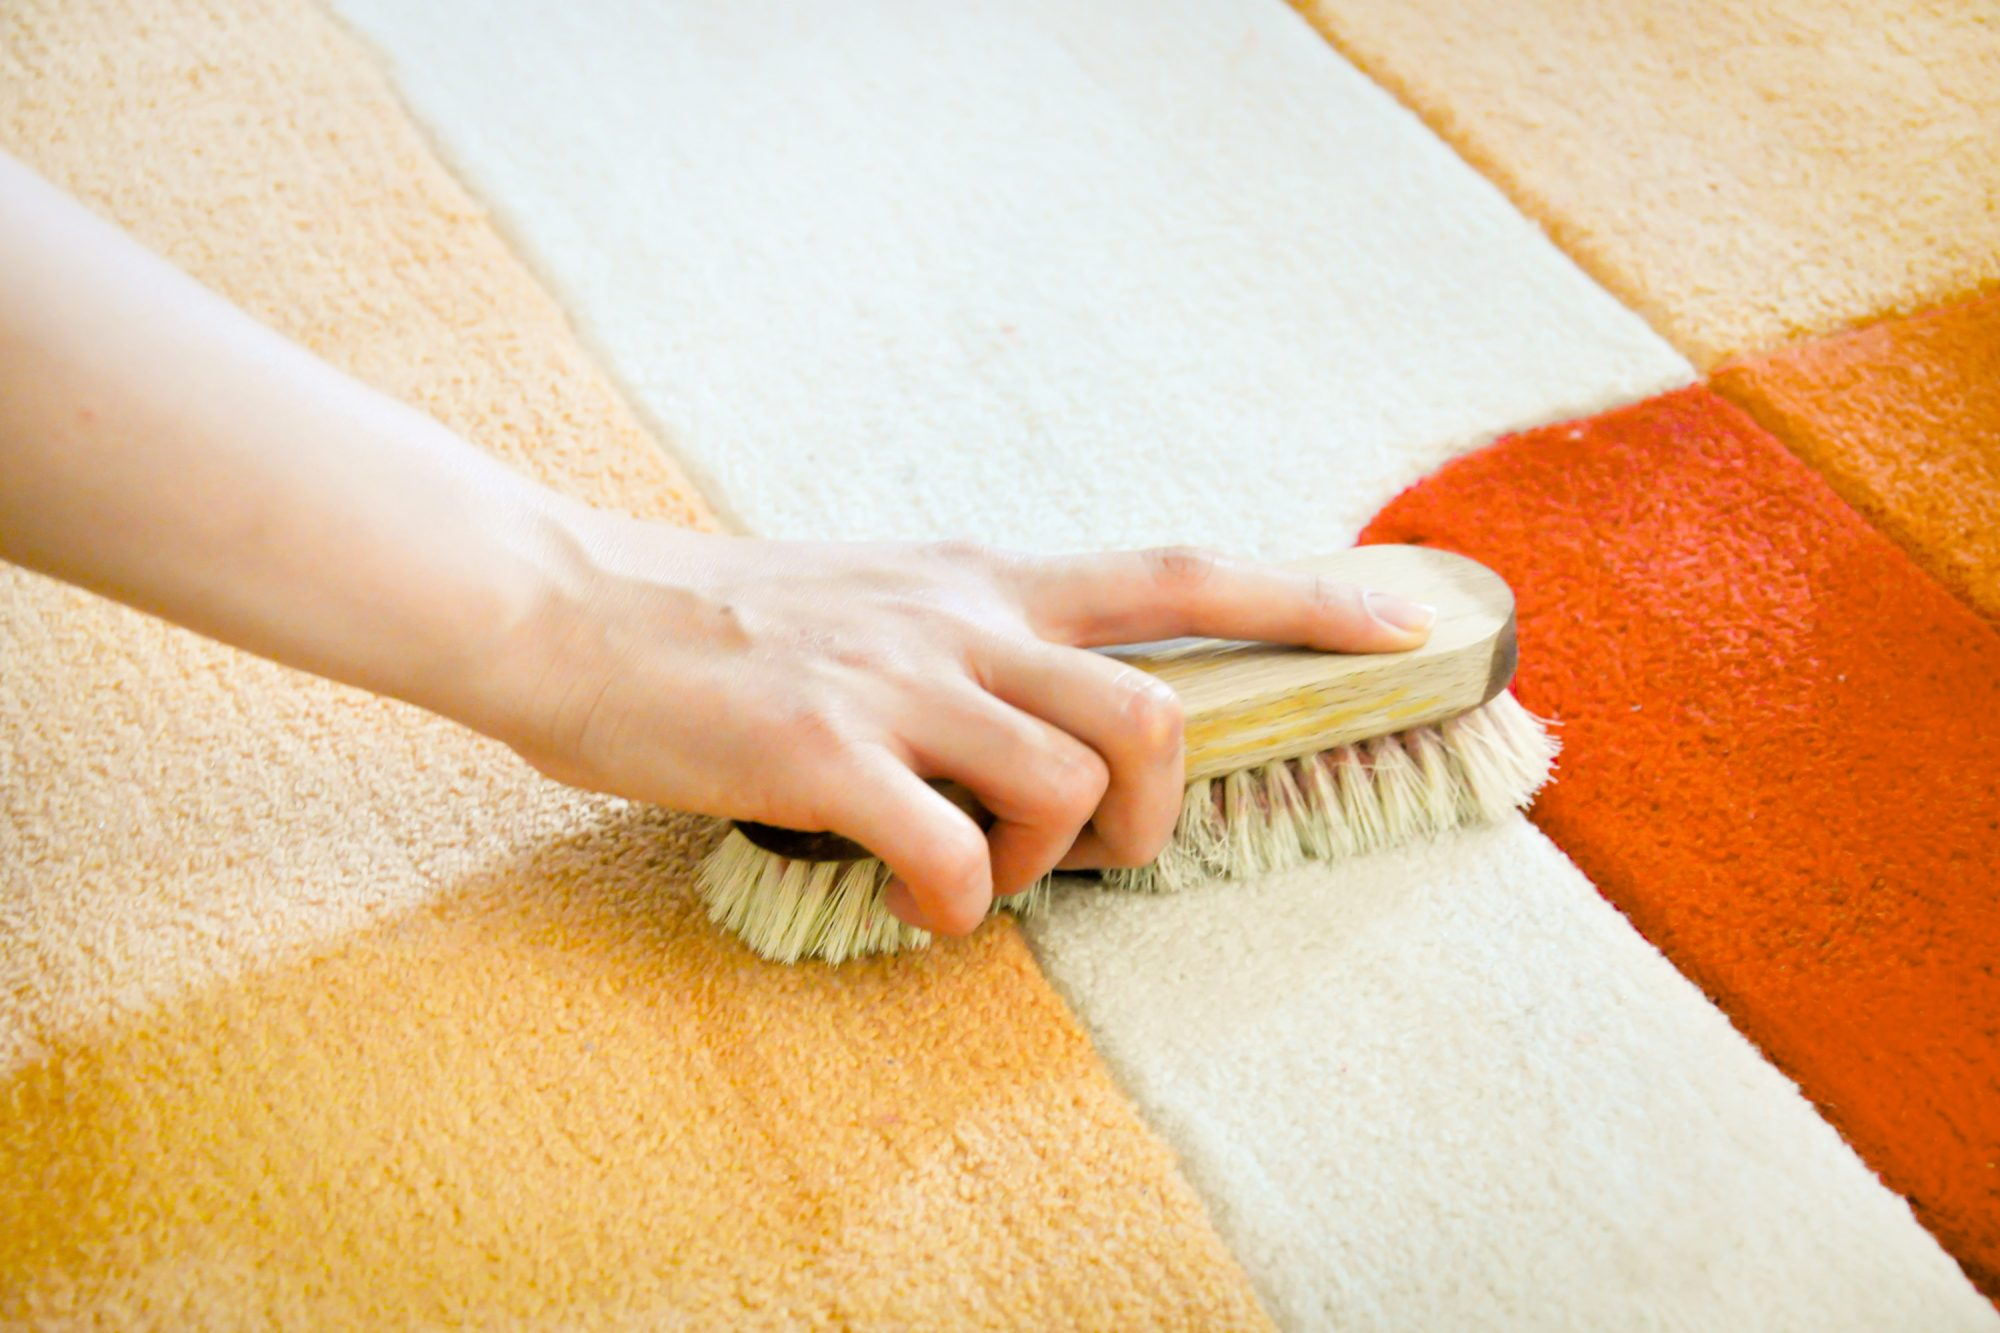 hand scrubbing carpet stain with cleaning solution